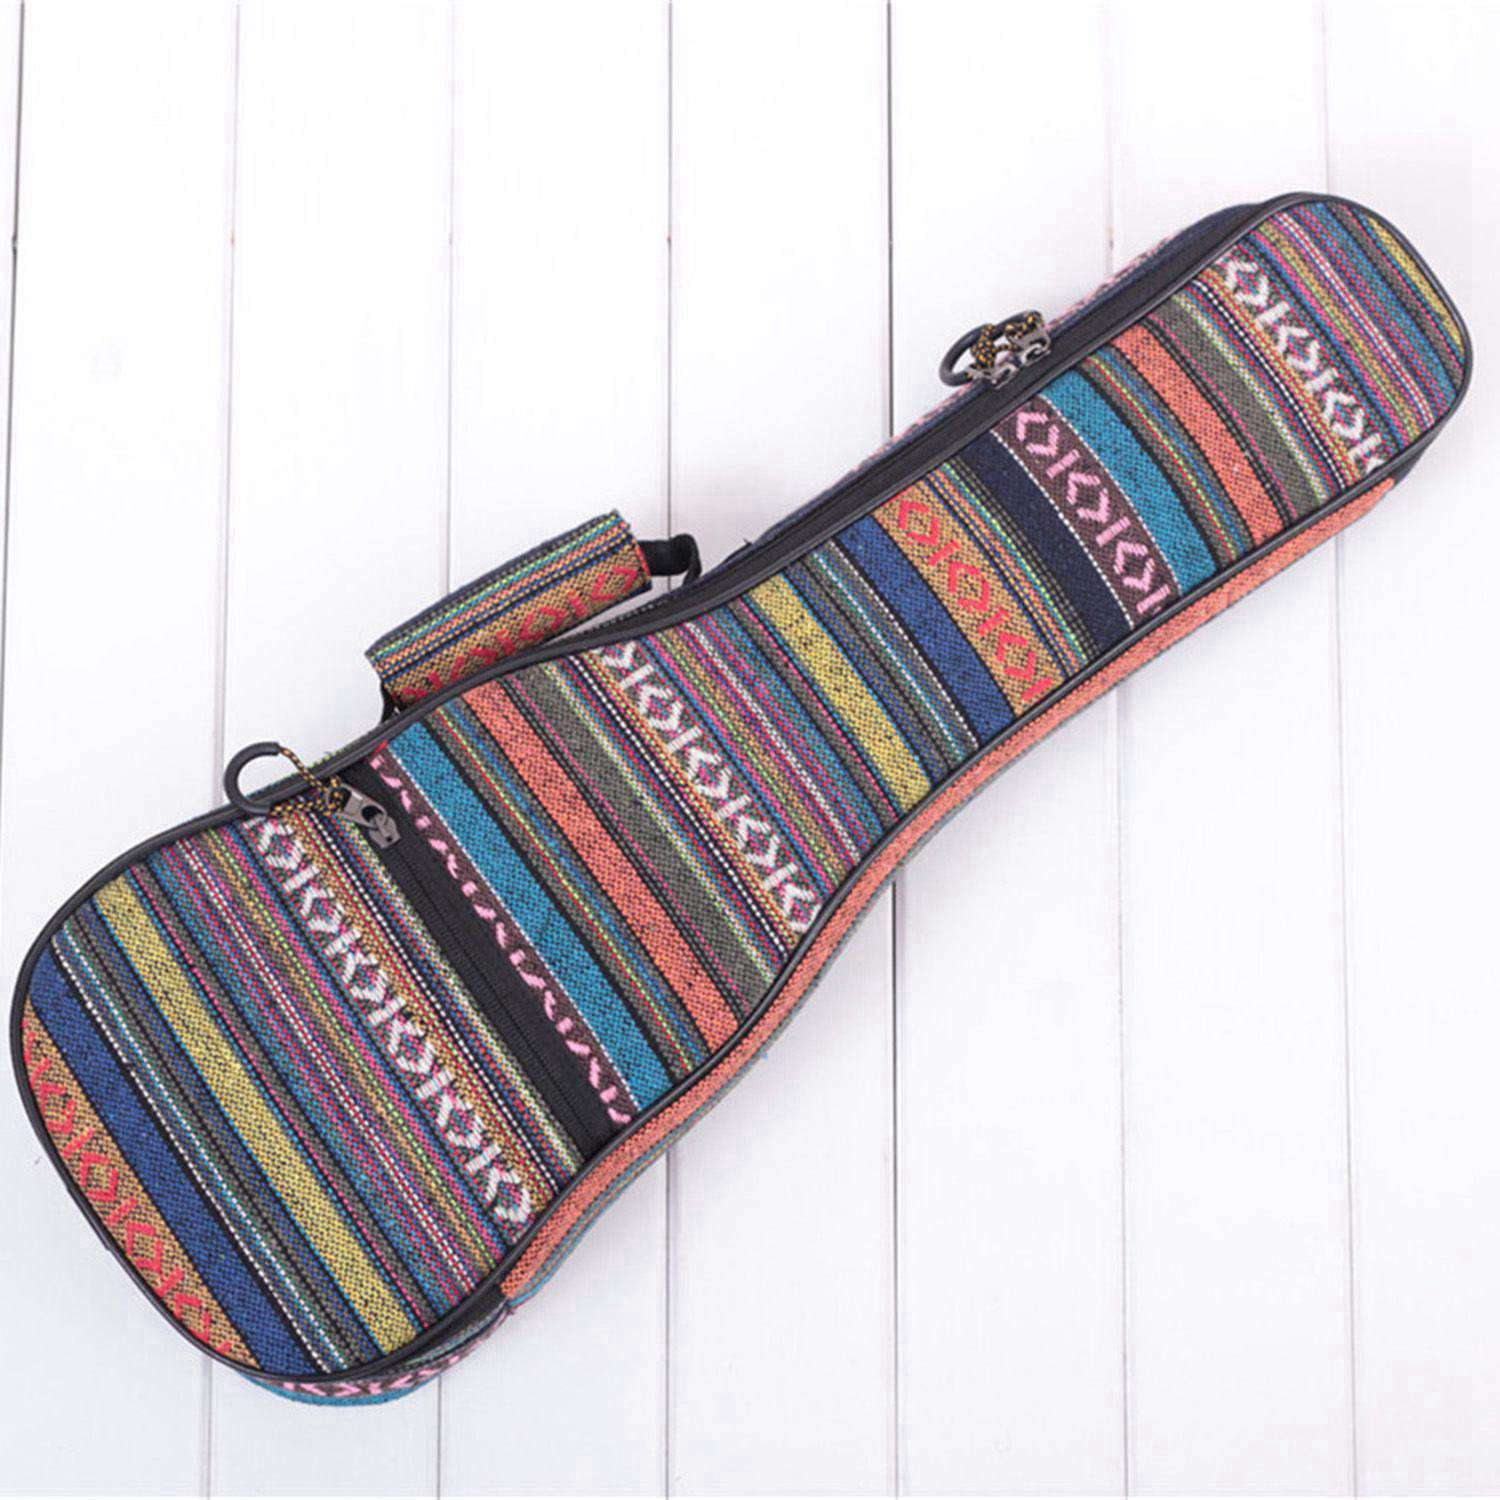 26inch Padded Cotton Folk Portable Bass Guitar Bag Ukulele Case Box Cover Guitar Backpack With Double Strap